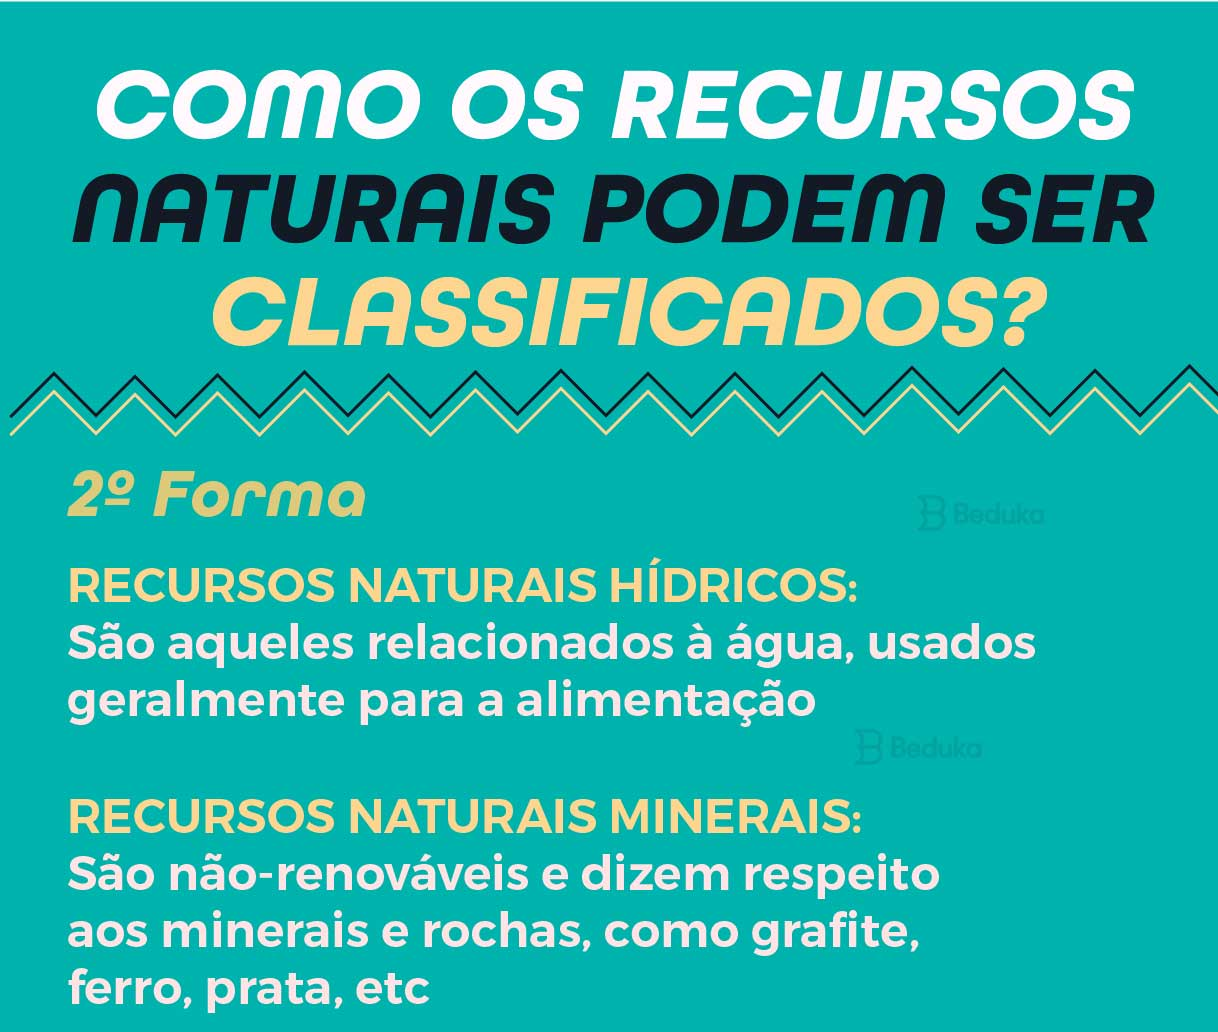 segunda forma de classificar os recursos naturais